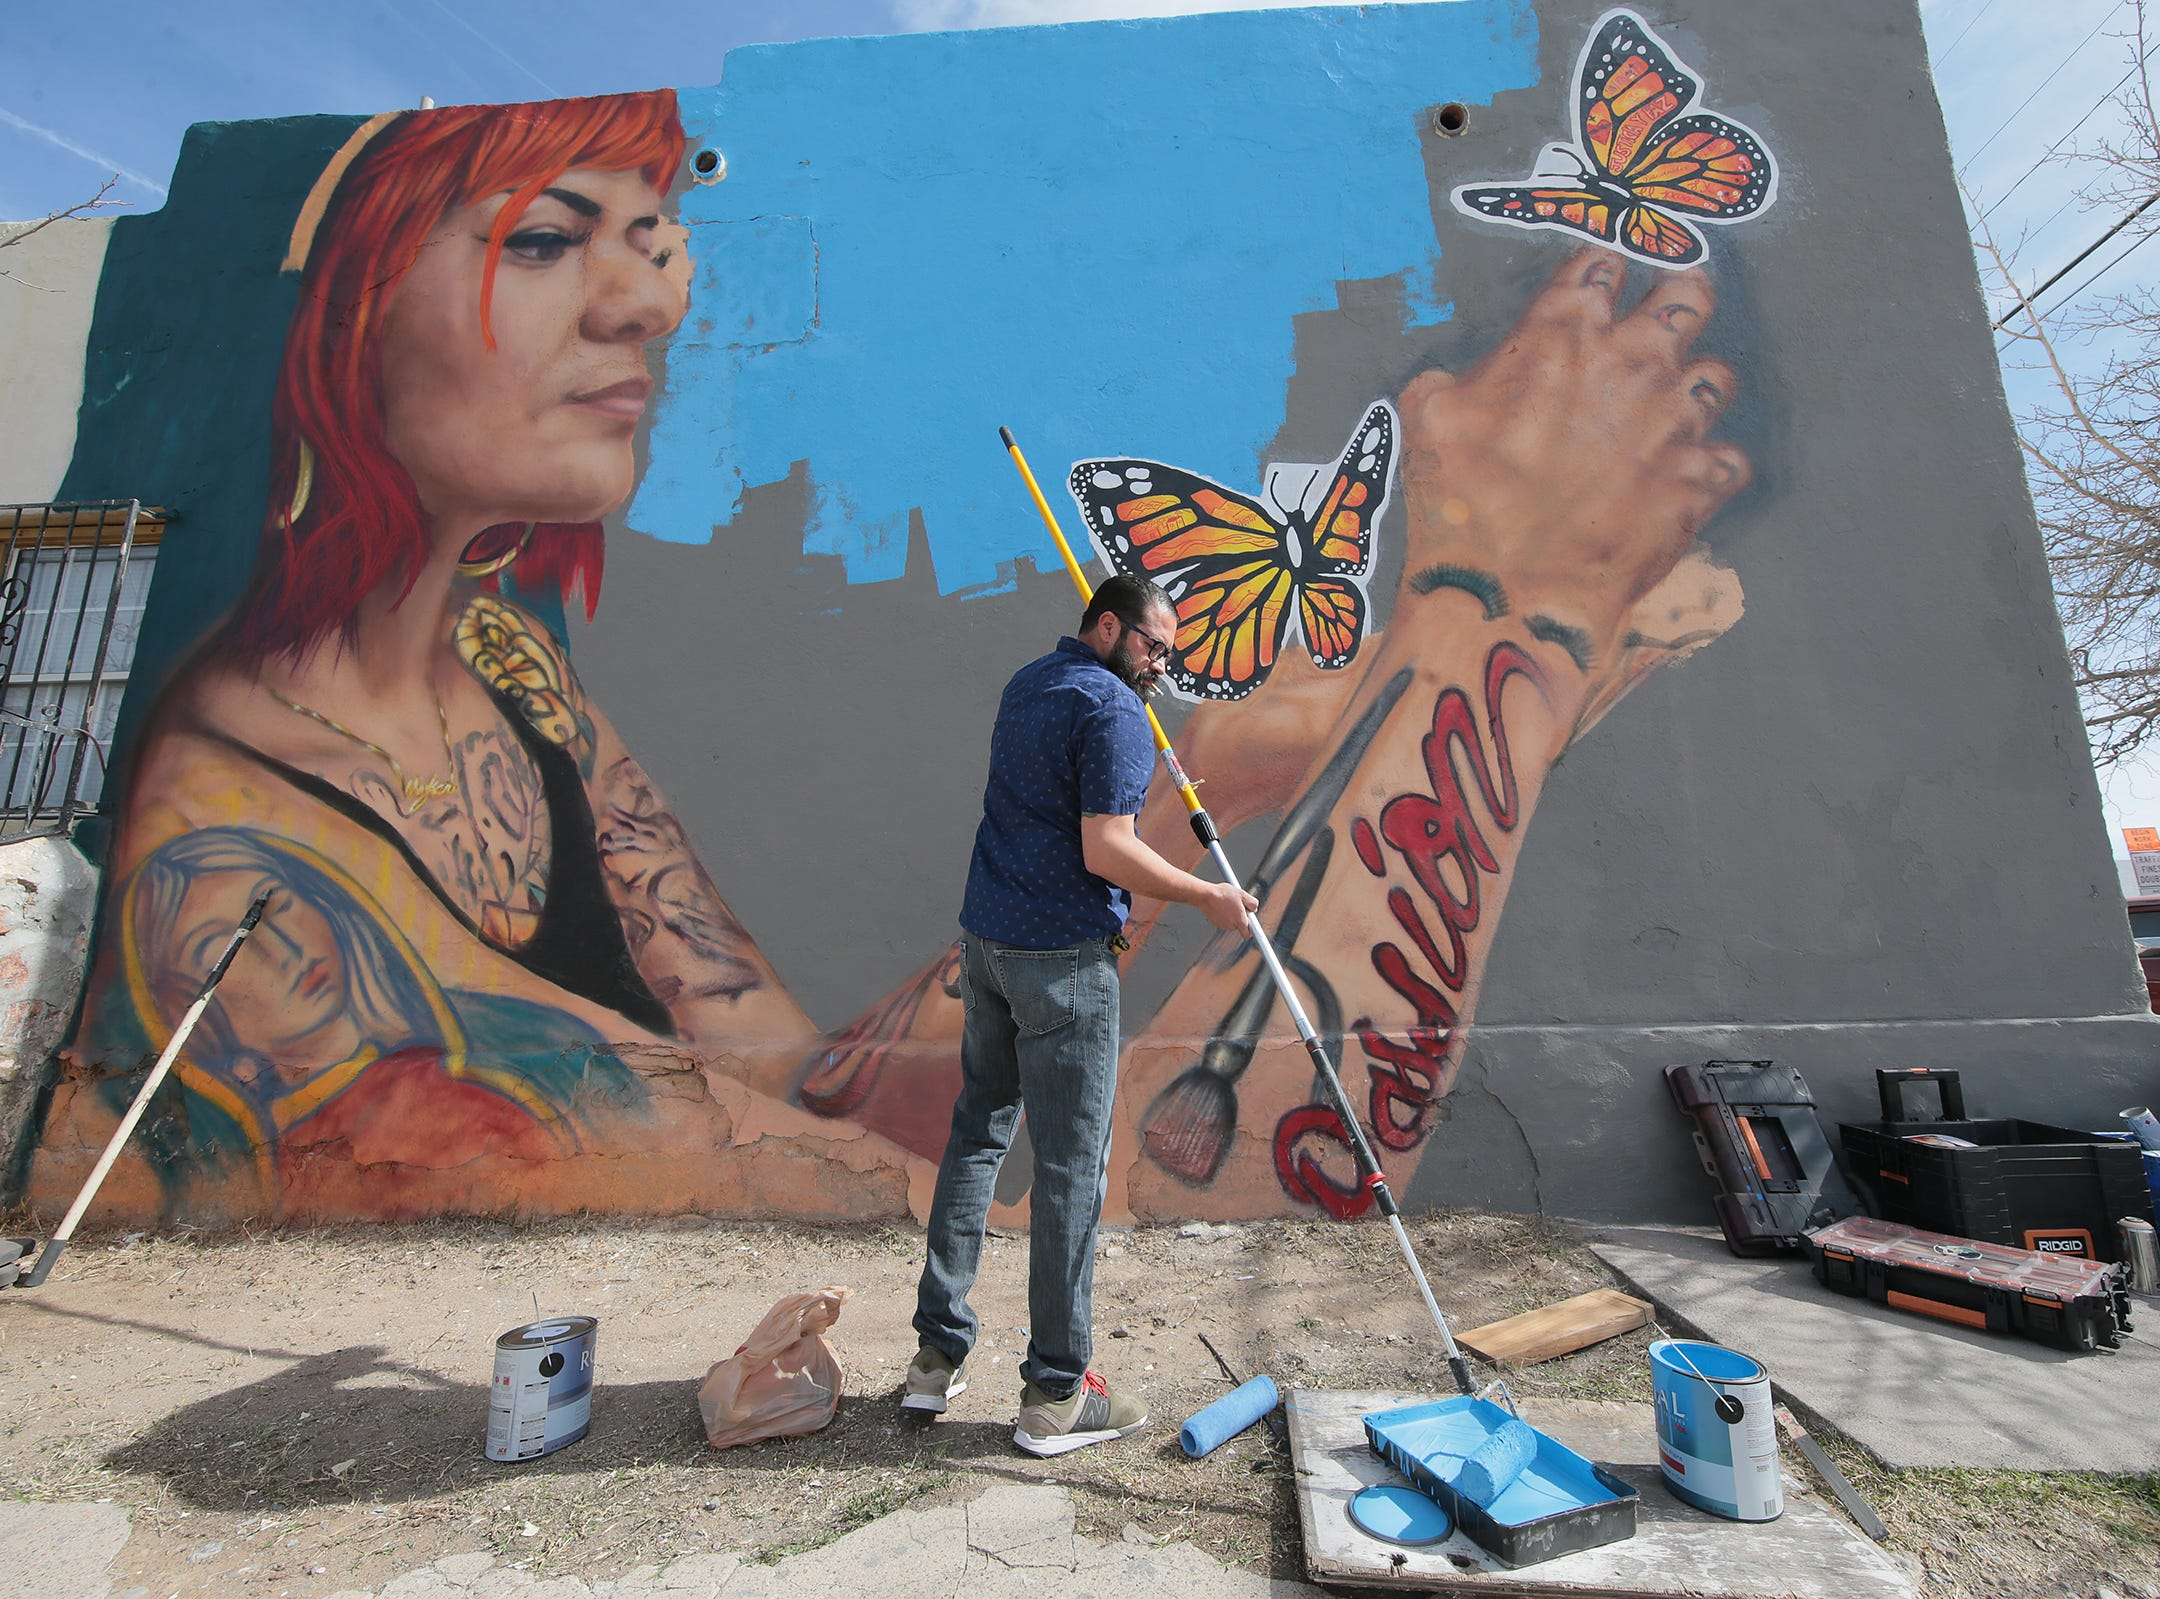 The mural at the corner of Tays Street and Delta Drive features an image of Gloria Yrrobali, owner of Bomb Beauty Products in El Paso, a news release said. Her image is posed in reference to the Virgen of Guadalupe and is purposely oriented toward Mexico.